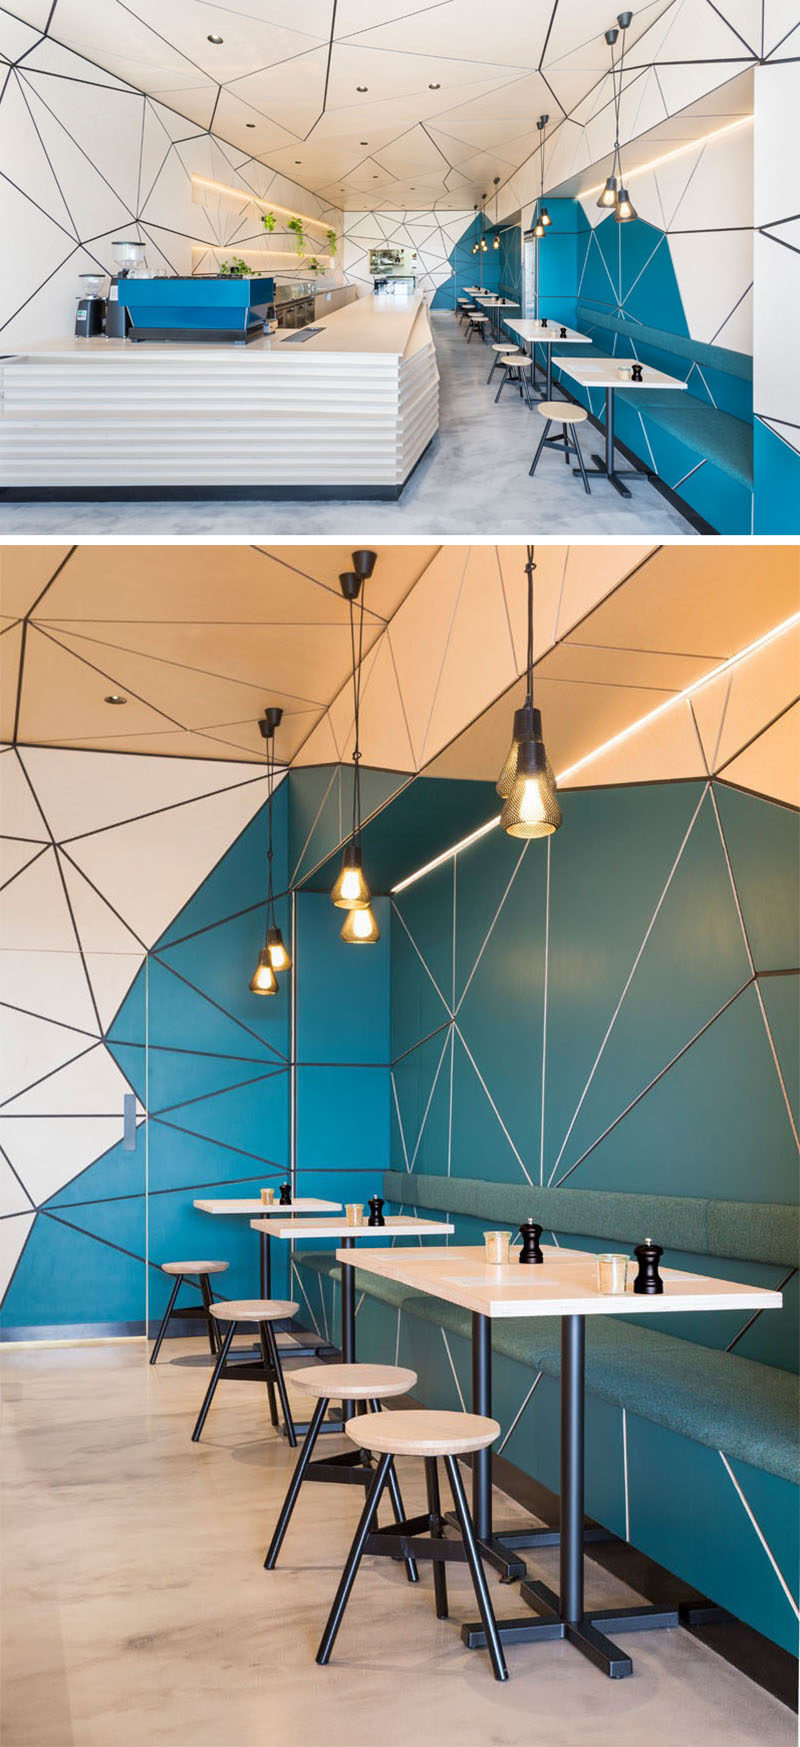 This modern coffee shop features wood and painted geometric panels all over the walls and ceiling.